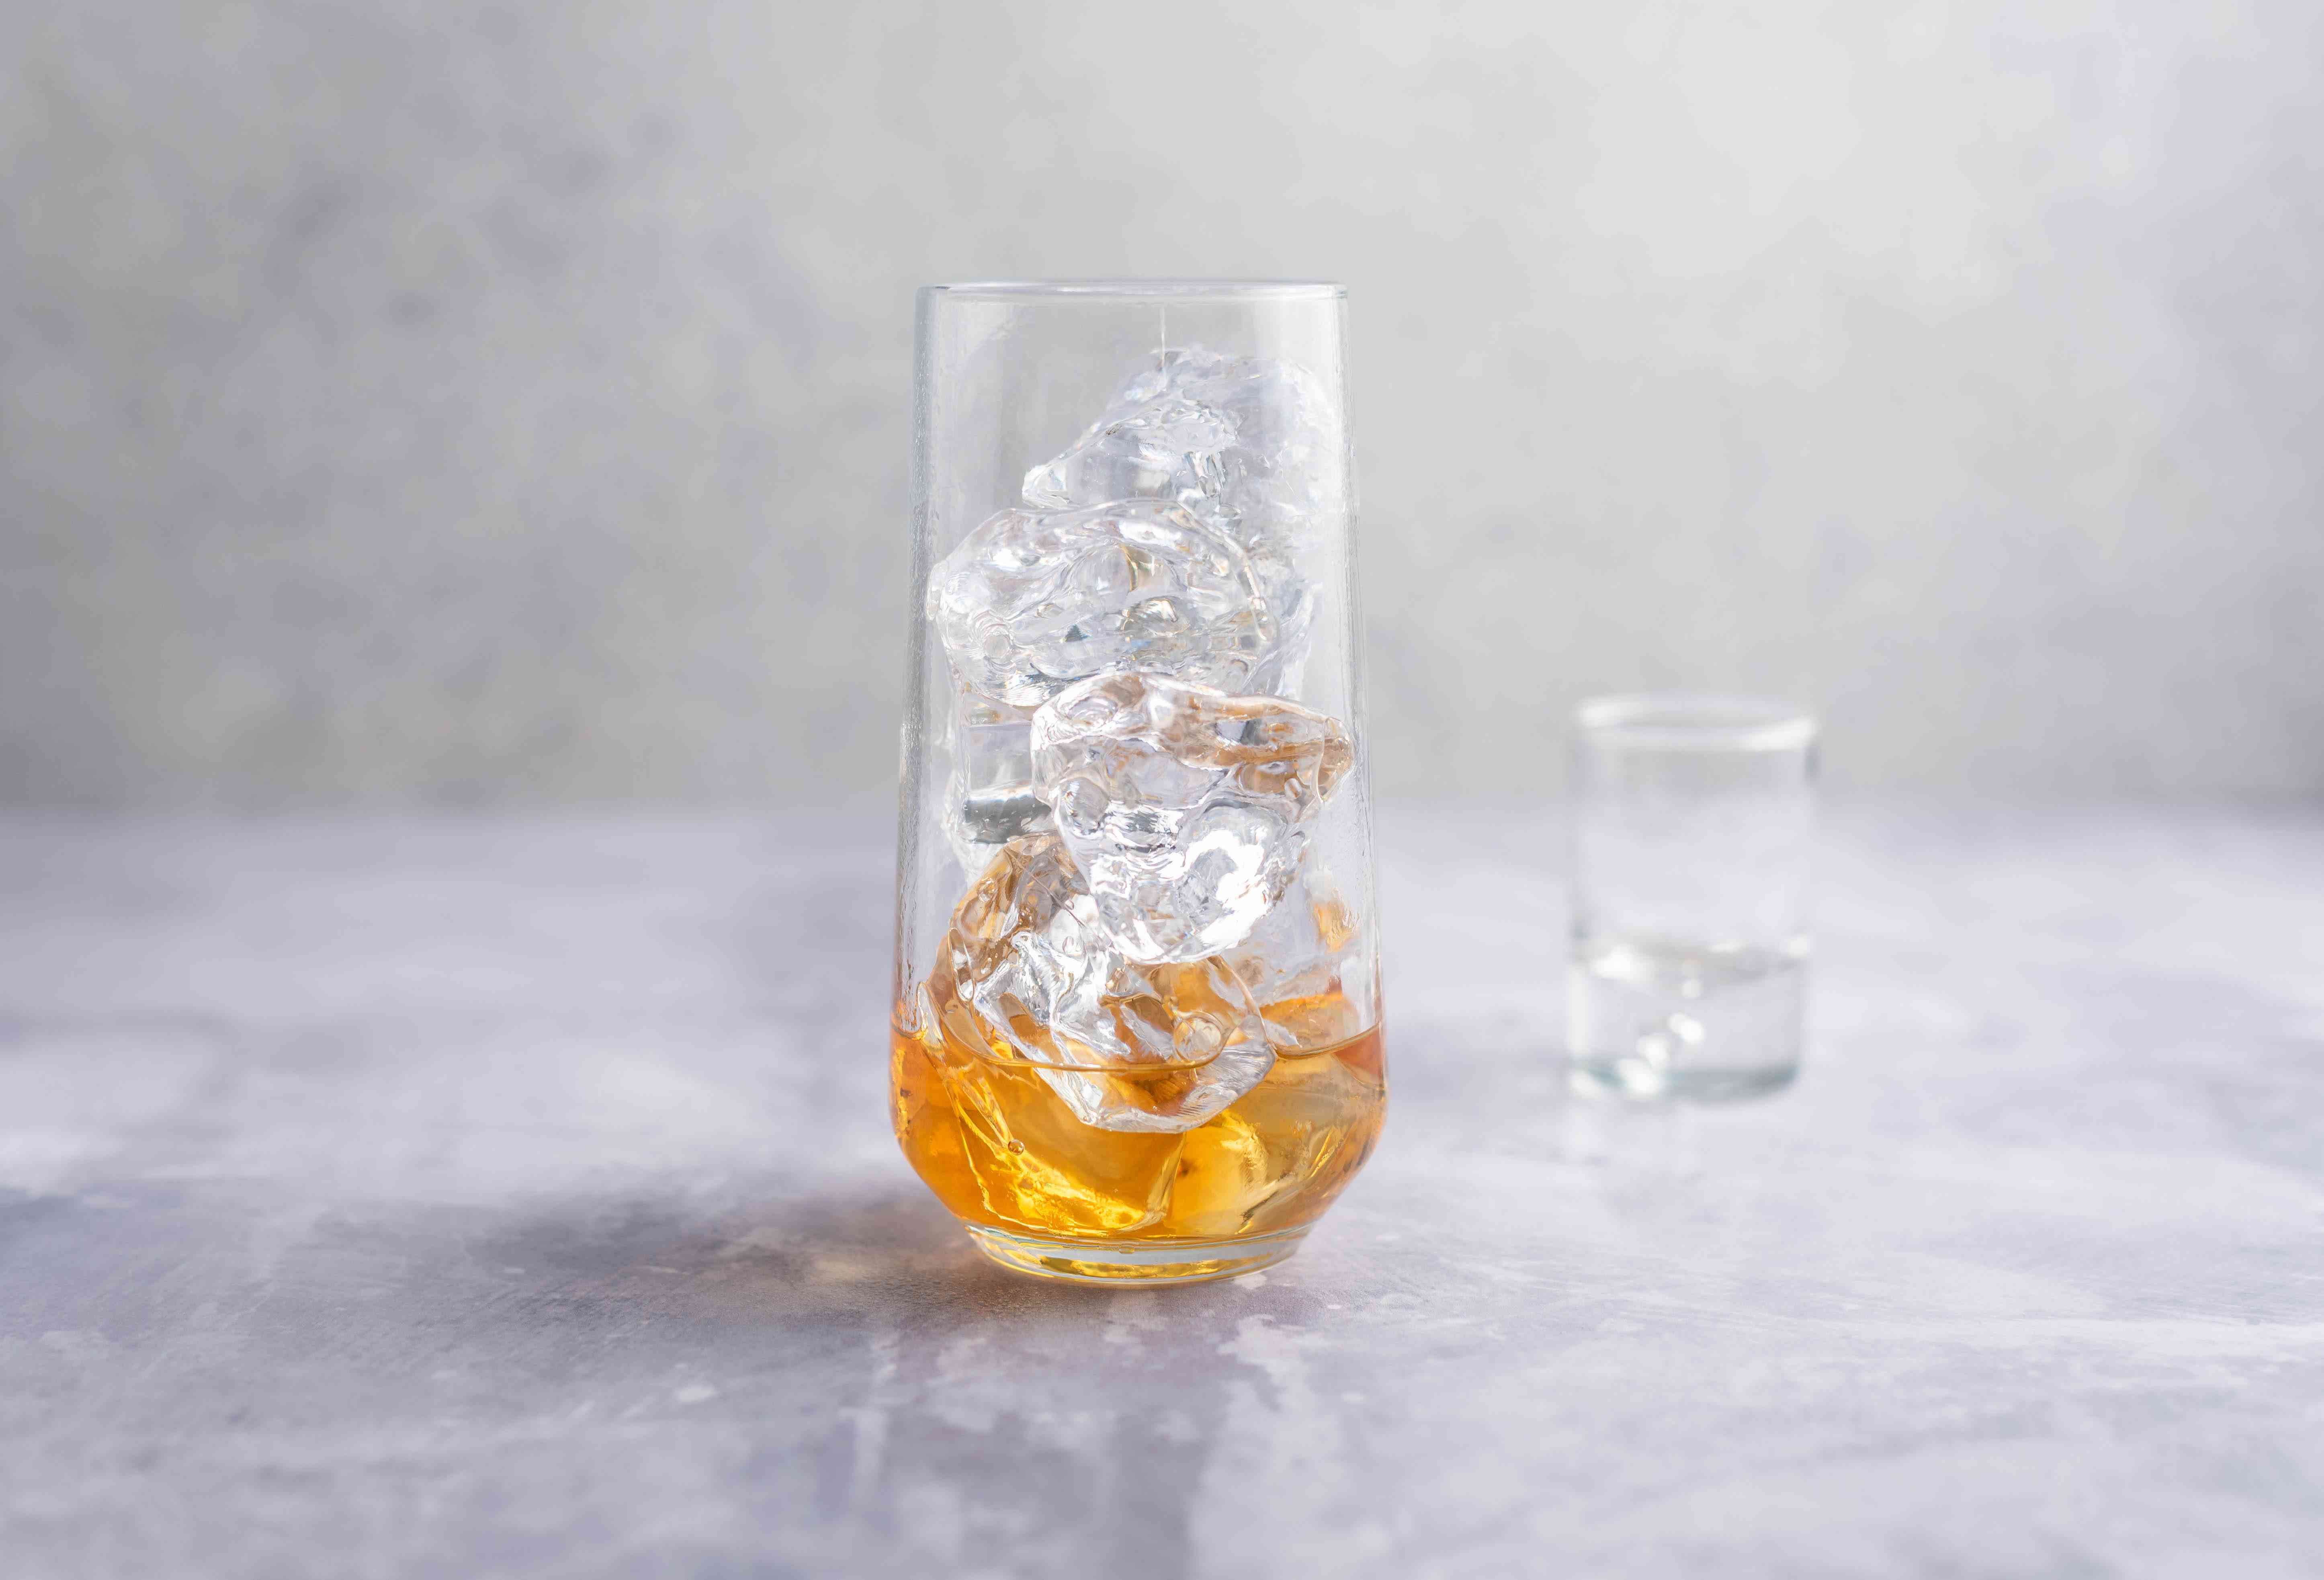 Whiskey poured into glass with ice